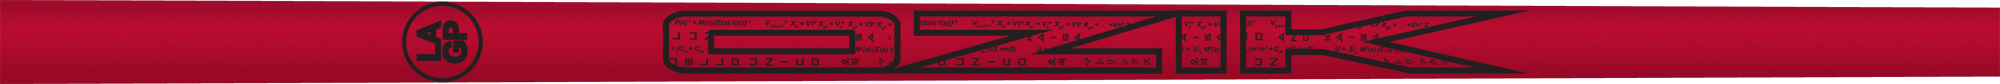 Ozik White Tie: Red Black Matte - Wood 60 R